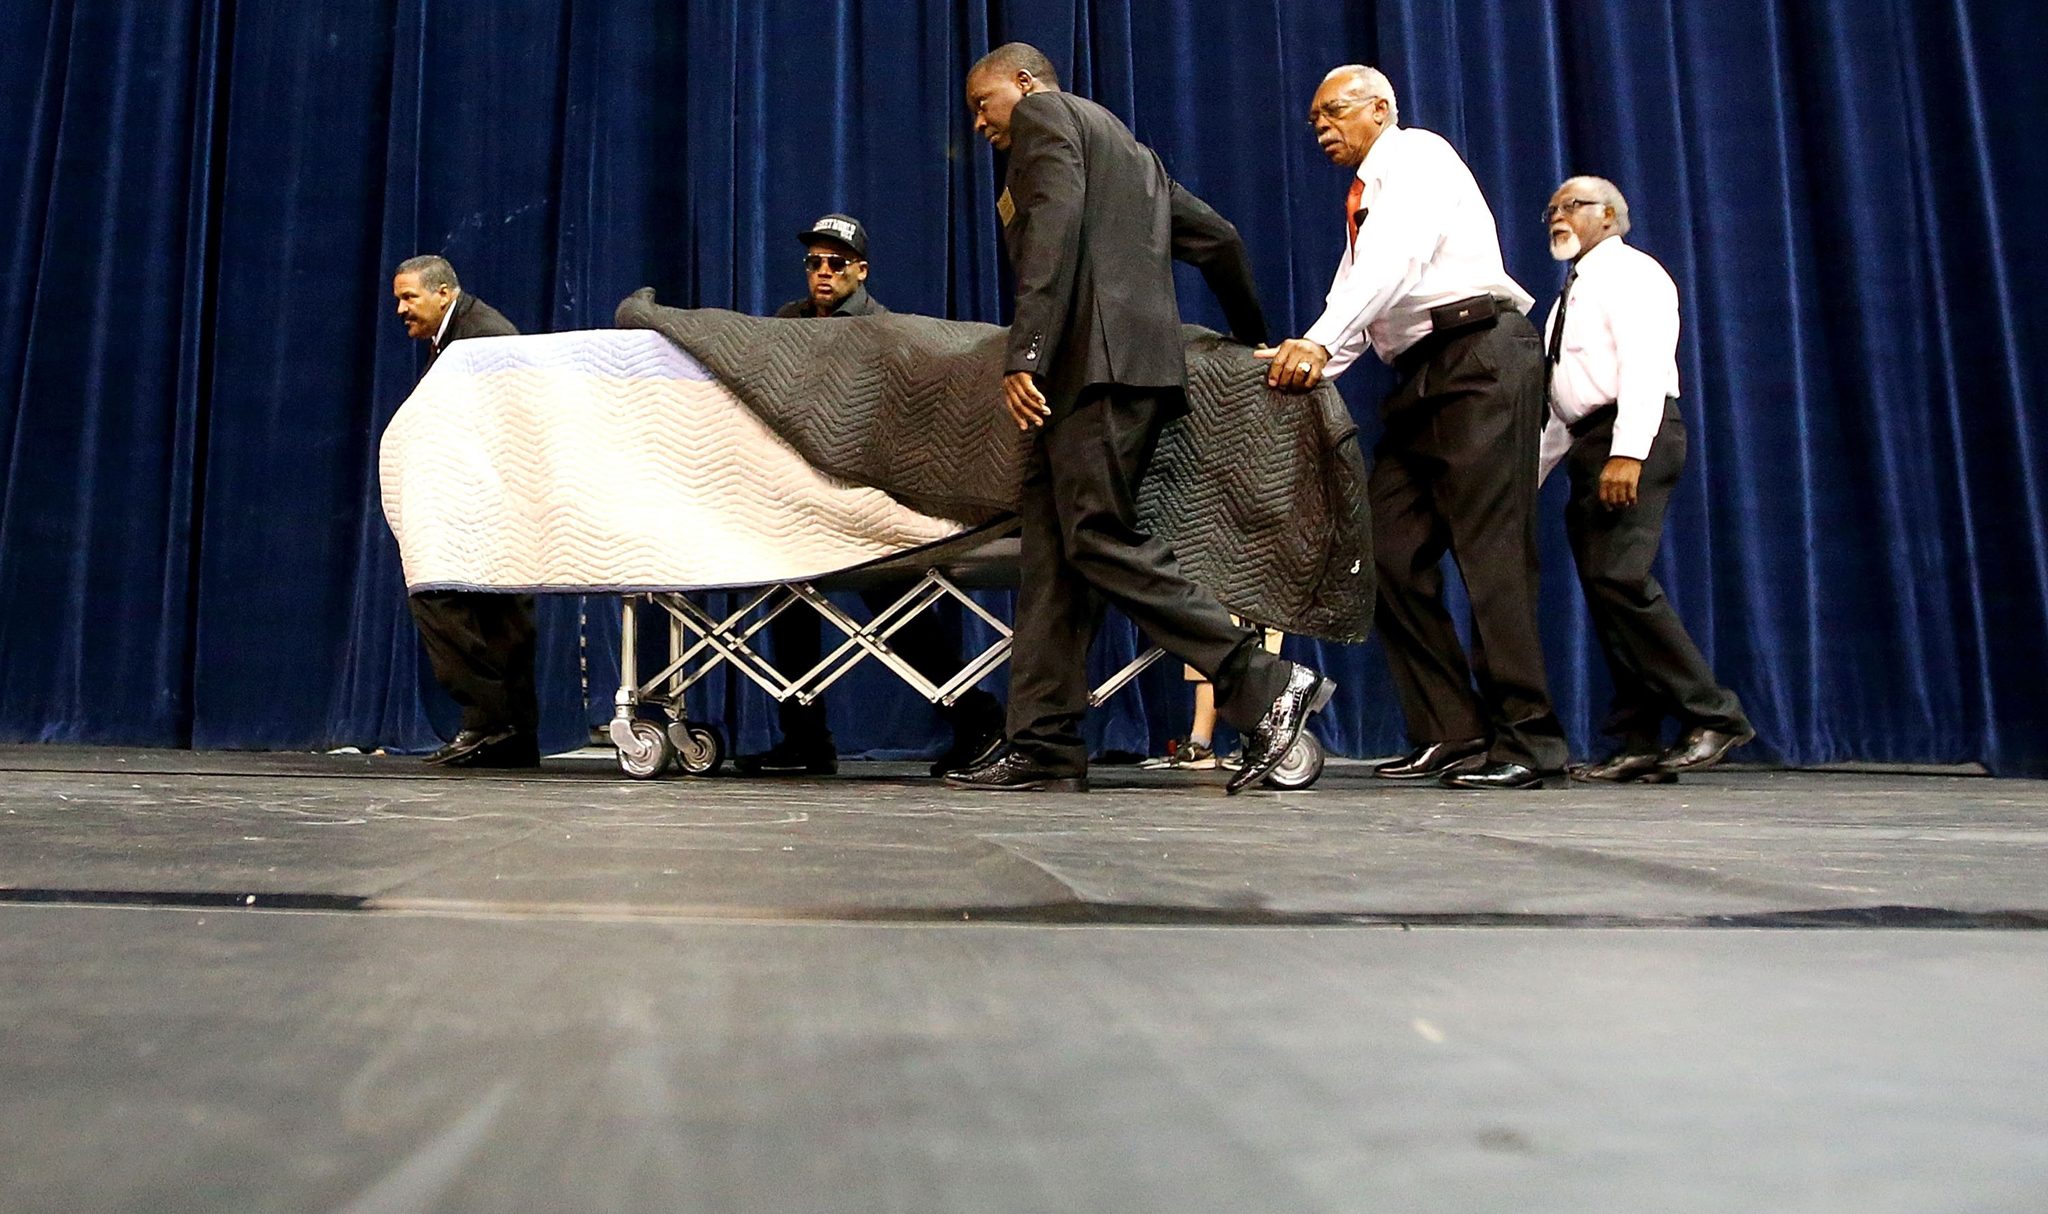 BATON ROUGE, LA - JULY 15:  The body of Alton Sterling, who was shot and killed by Baton Rouge Police officers, lies in a casket as he is brought into his funeral at Southern University on July 15, 2016 in Baton Rouge, Louisiana.  (Photo by Sean Gardner/Getty Images)